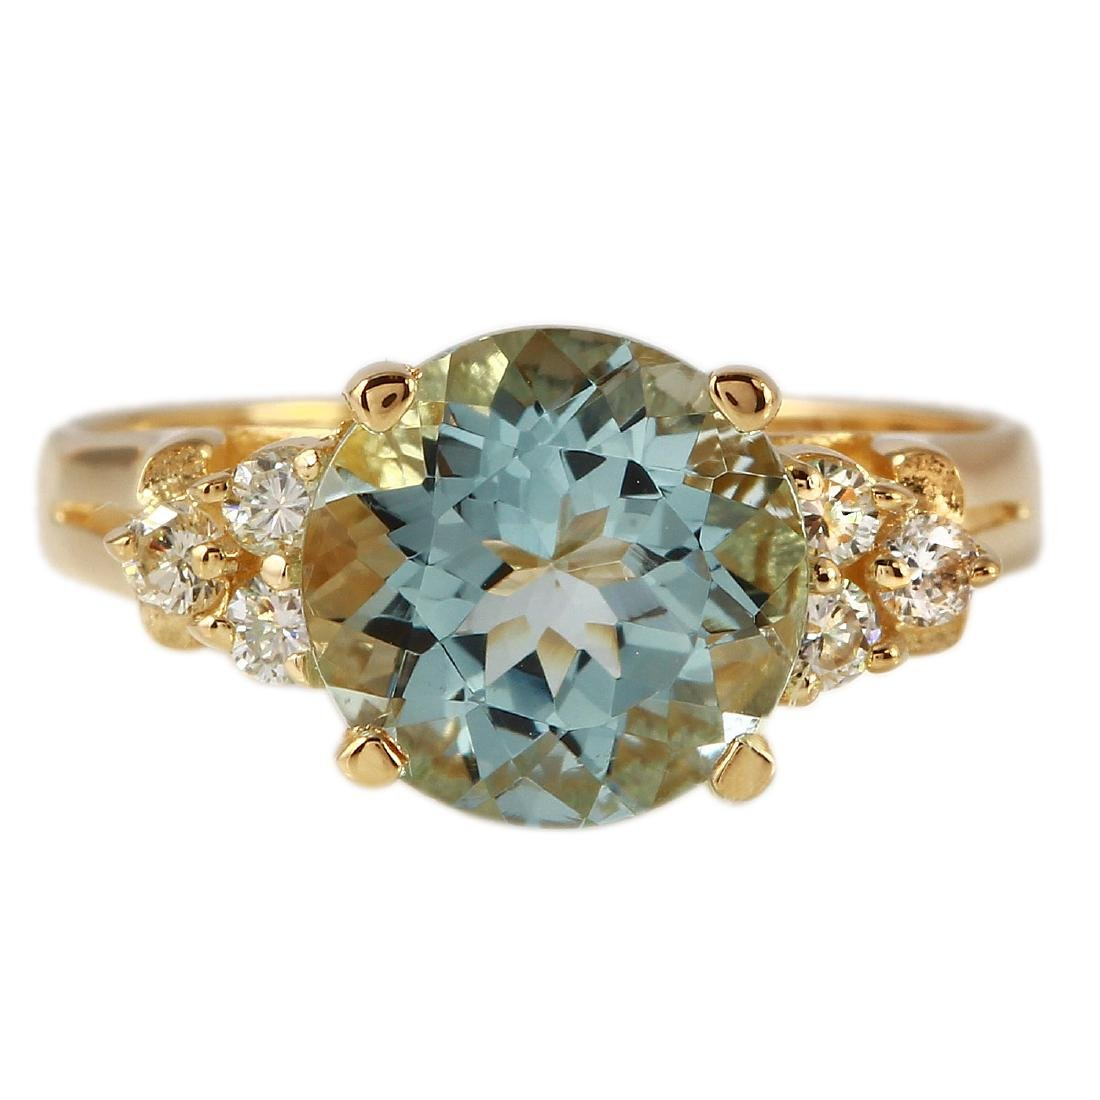 2.17 Carat Natural Aquamarine 18K Solid Yellow Gold